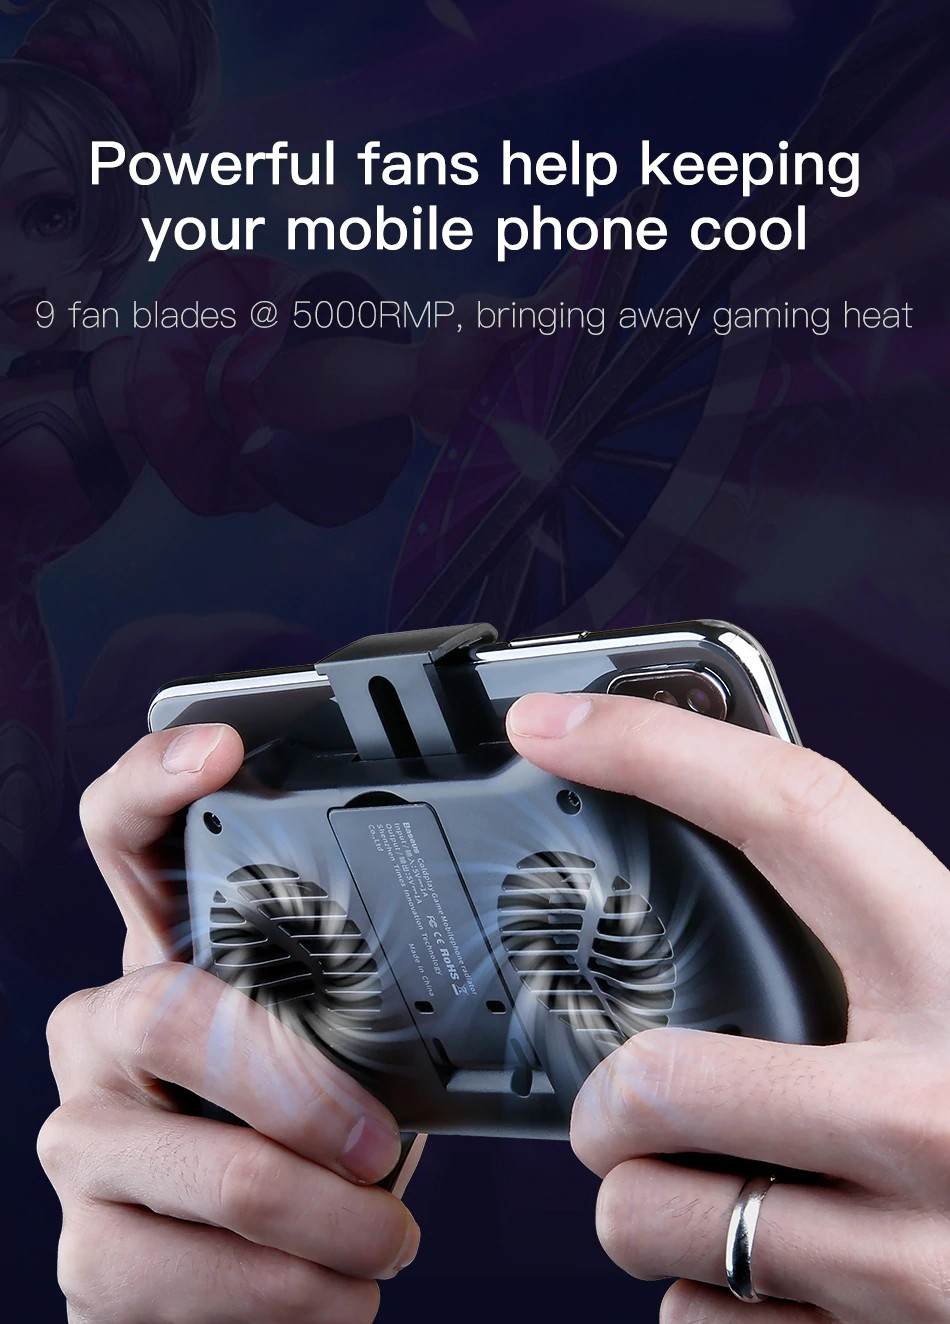 Baseus Mobile Phone Cooler Gamepad (13)